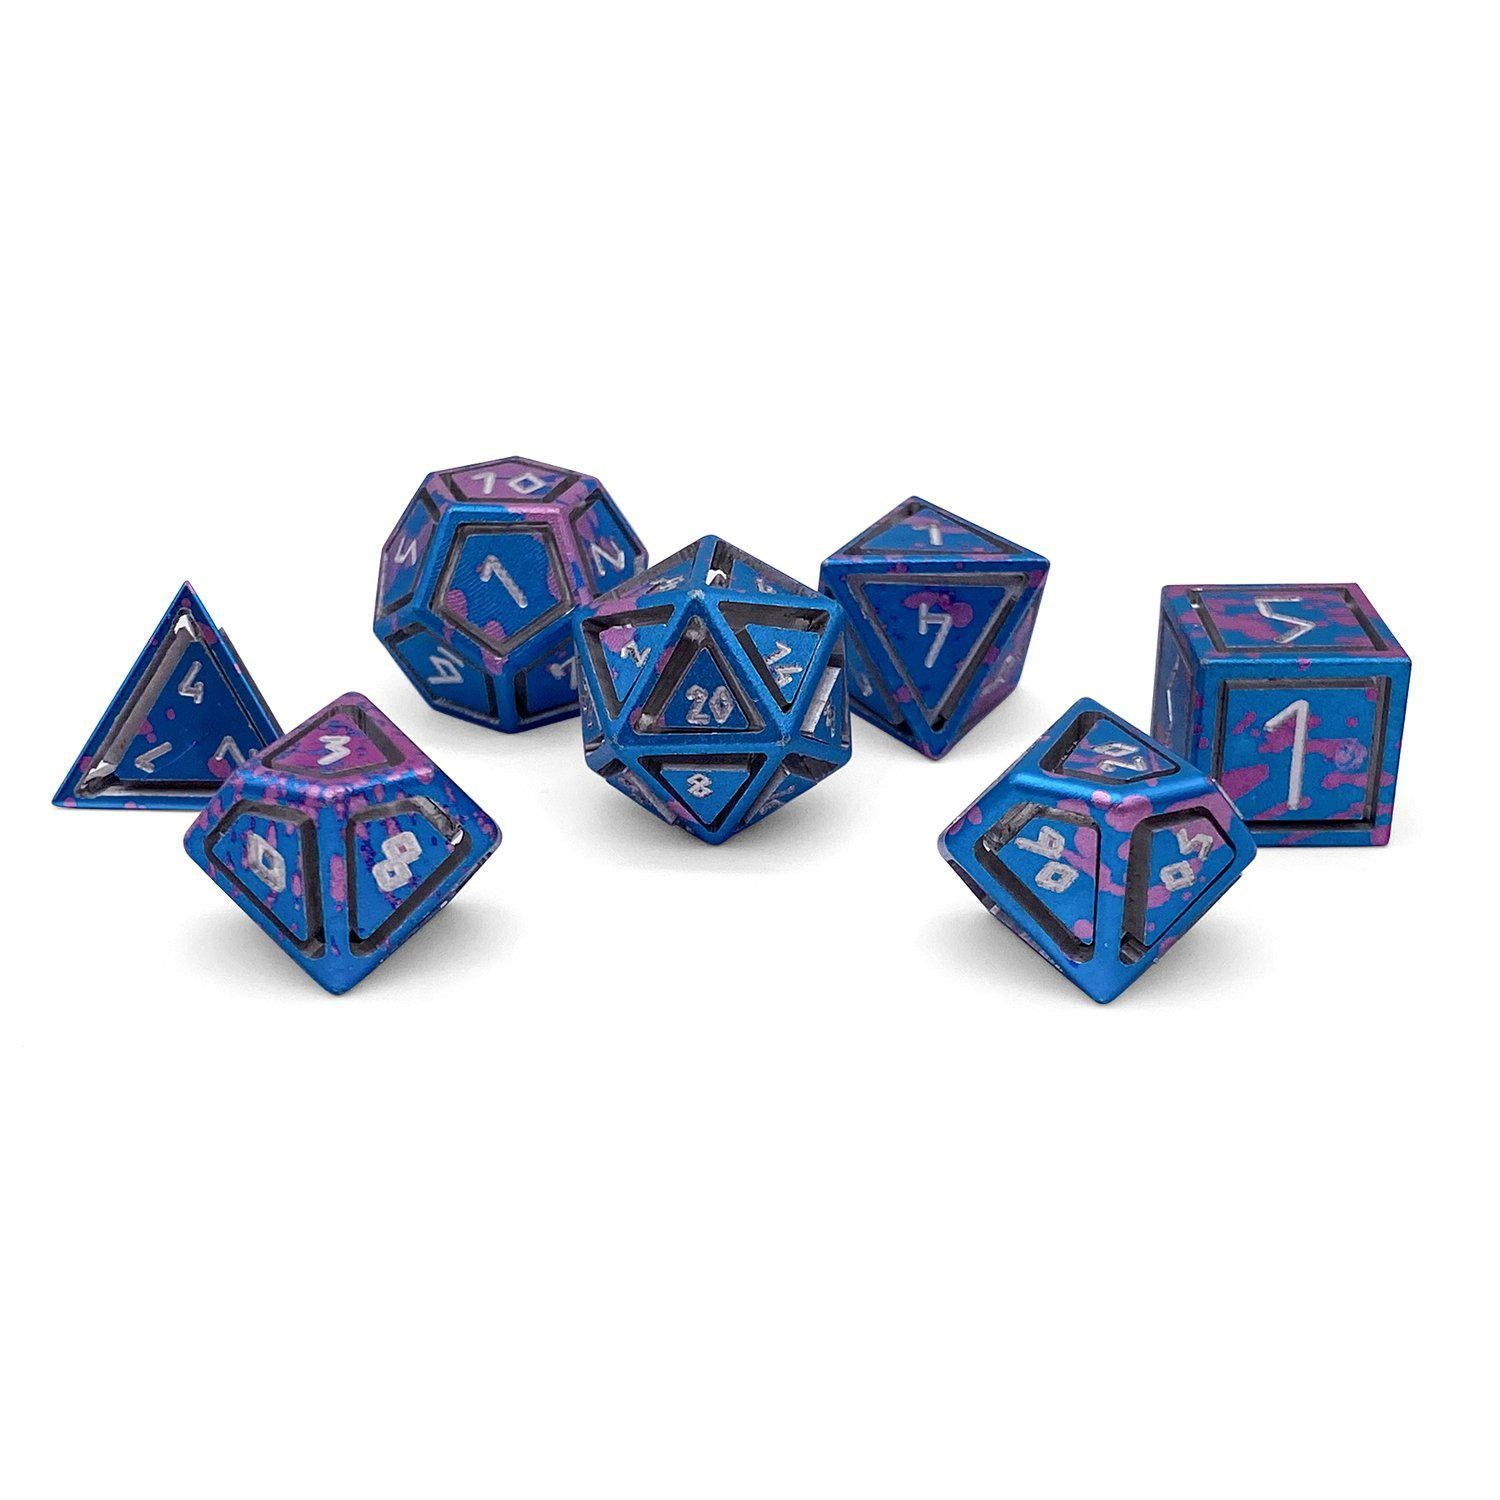 Nimbus Wondrous Precision CNC Aluminum Dice Set - Miami Dice